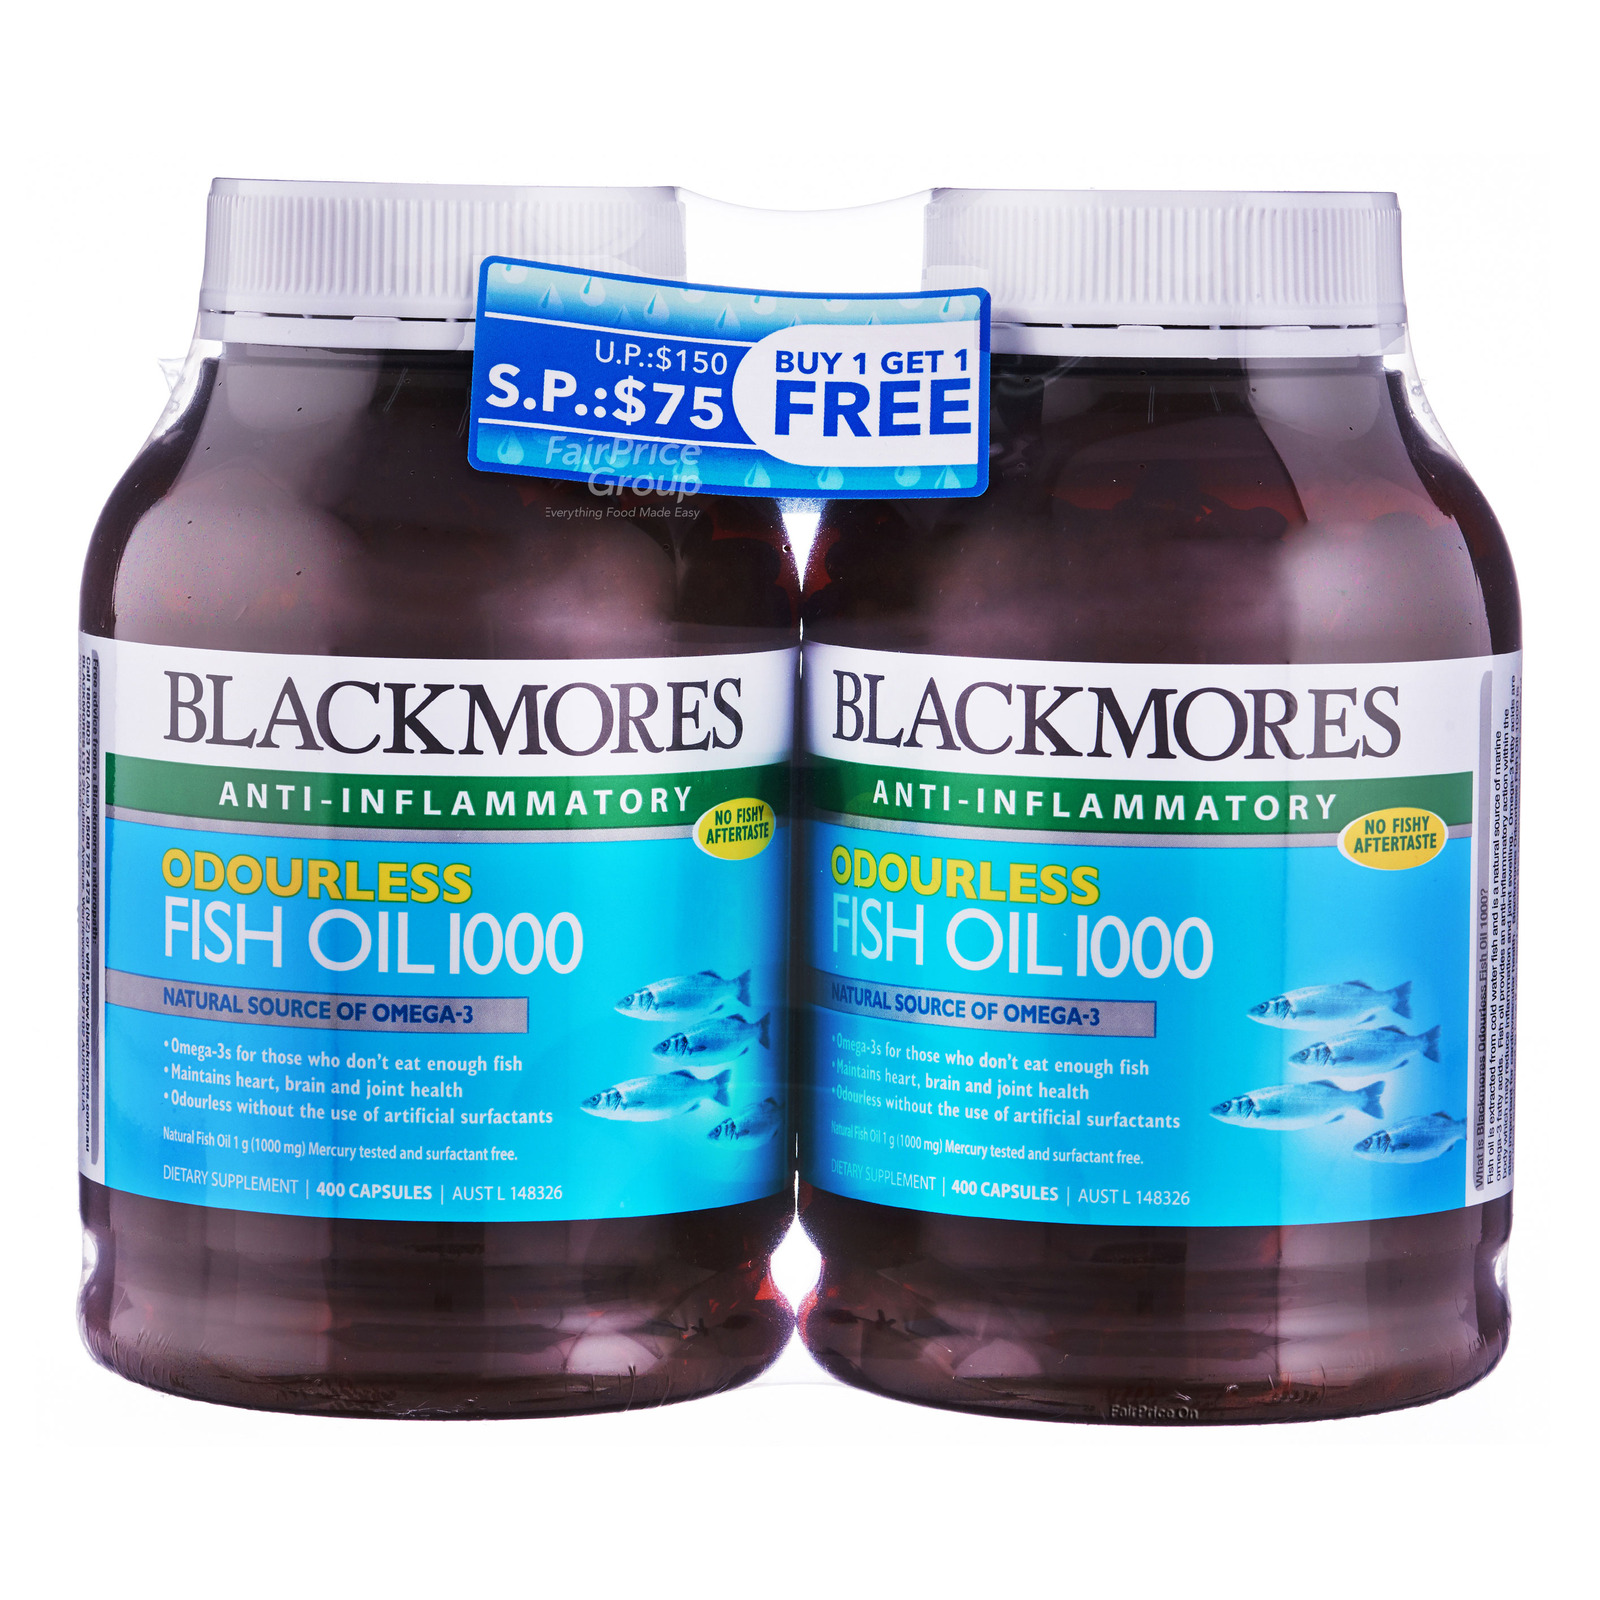 Blackmores Dietary Supplement - Fish Oil 1000 (Odourless)